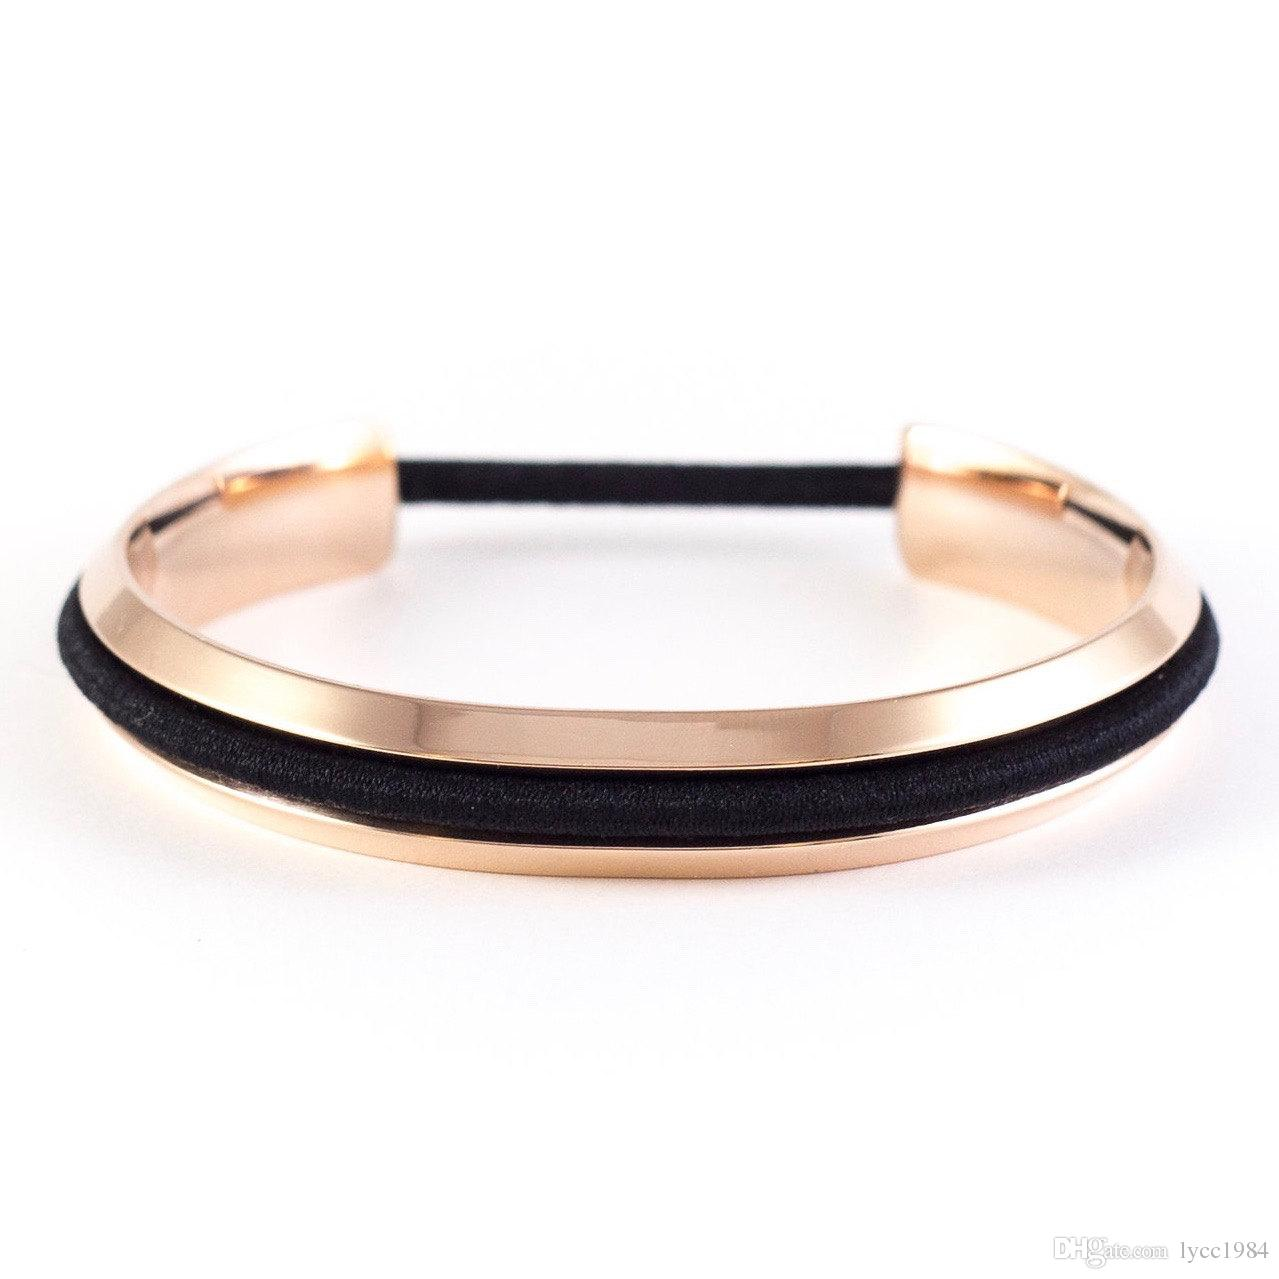 DHL Hair Ties Bracelet Hair Band Holder High Quality Cuff Bangle Silver Gold Rose Gold Wristband for Wedding Girls Gift